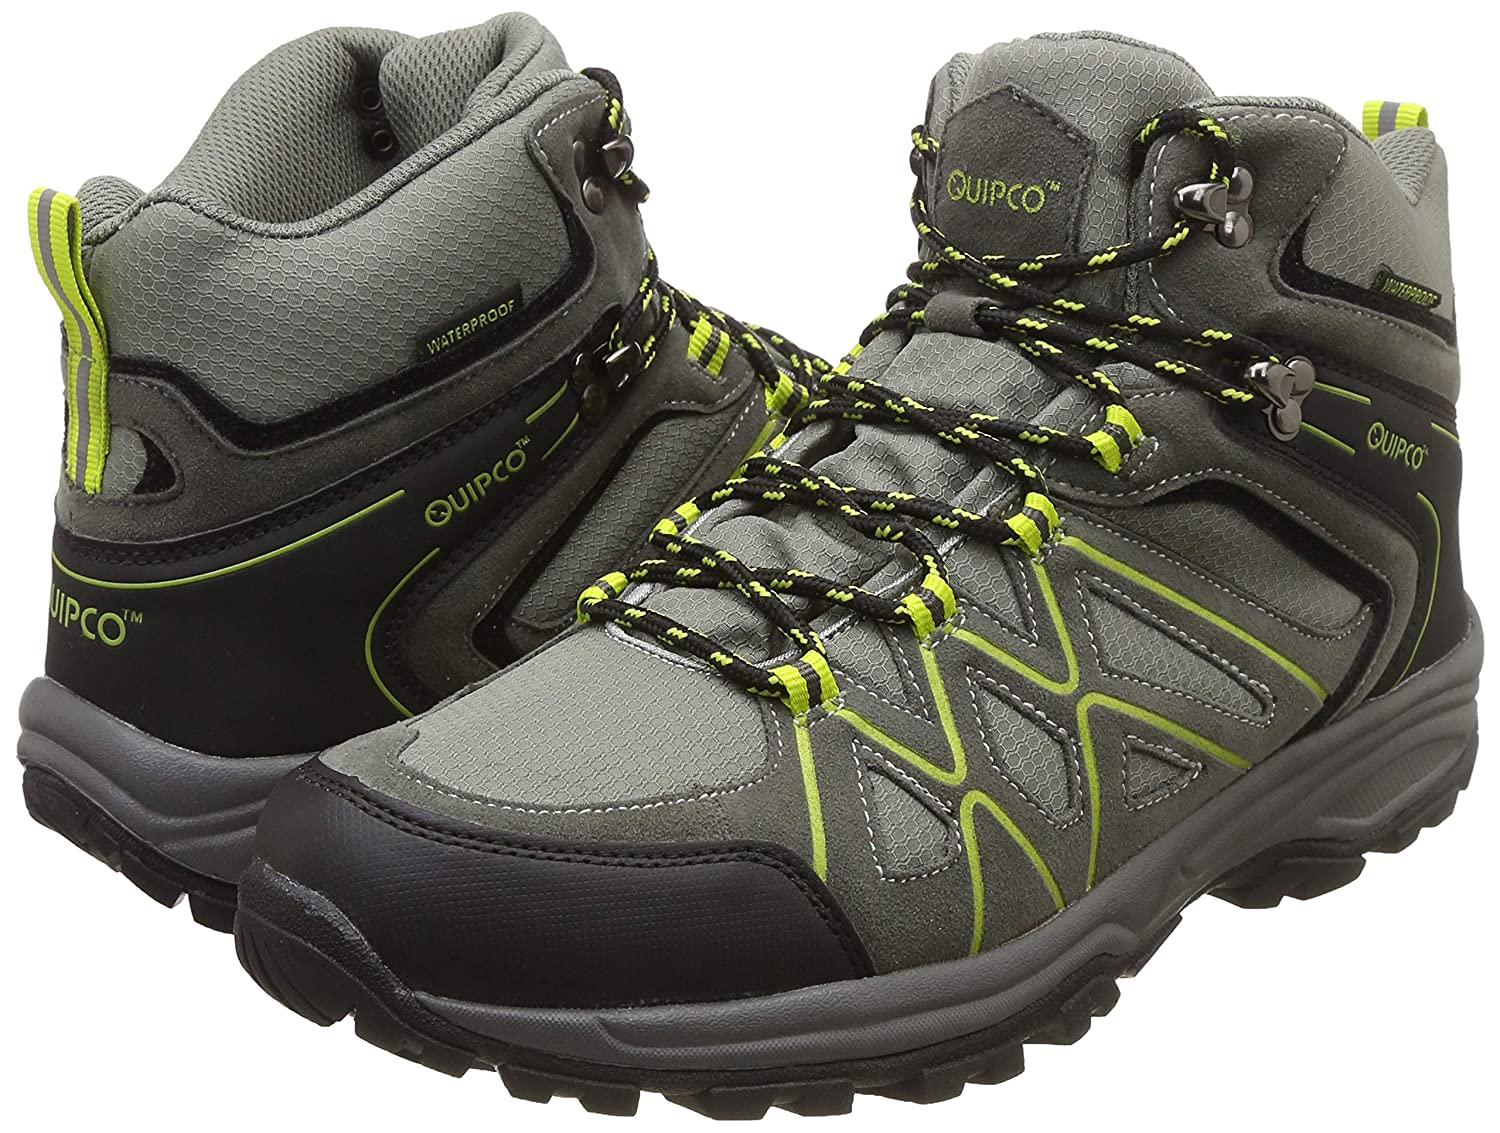 90e936d2a1183f QuipCo Kanamo Waterproof Hiking Shoes: Amazon.in: Sports, Fitness & Outdoors